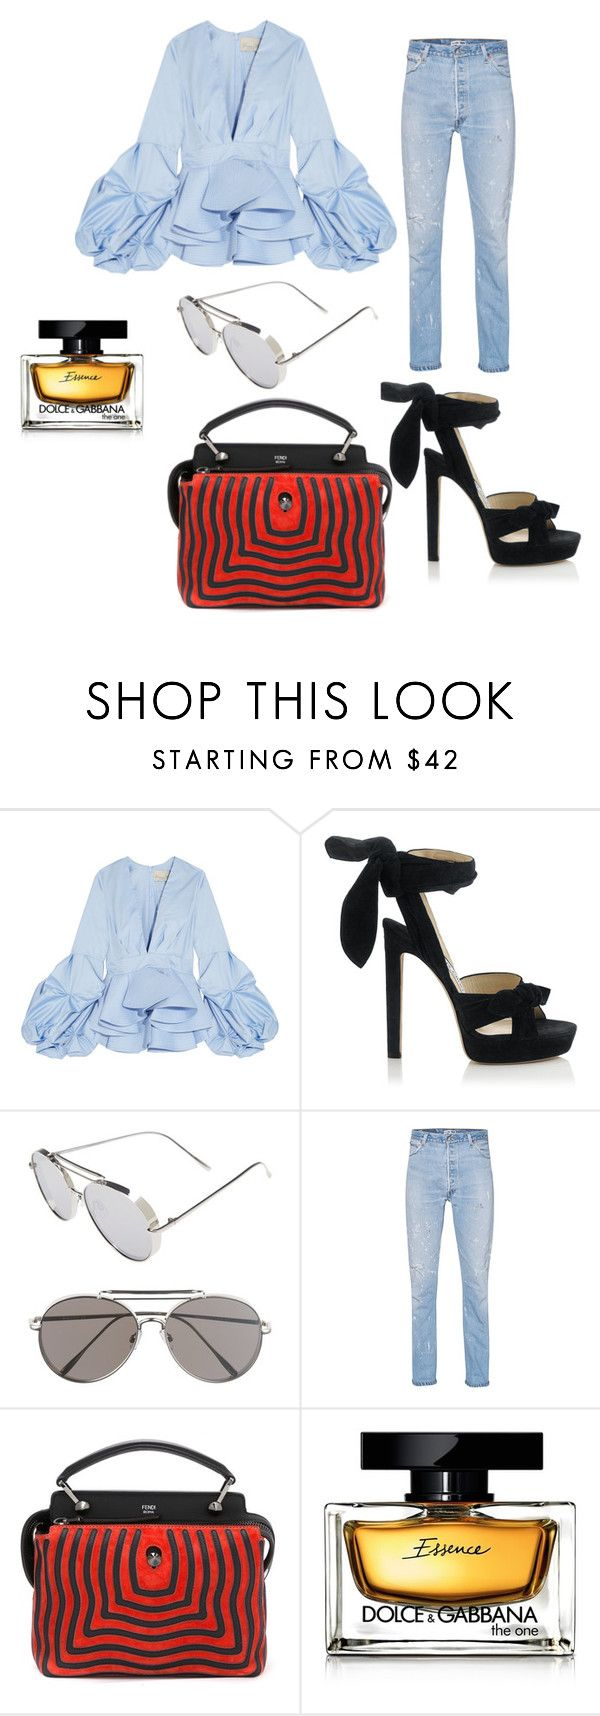 """Typically"" by divinenk ❤ liked on Polyvore featuring Johanna Ortiz, Jimmy Choo, Circus by Sam Edelman, RE/DONE, Fendi and Dolce&Gabbana"